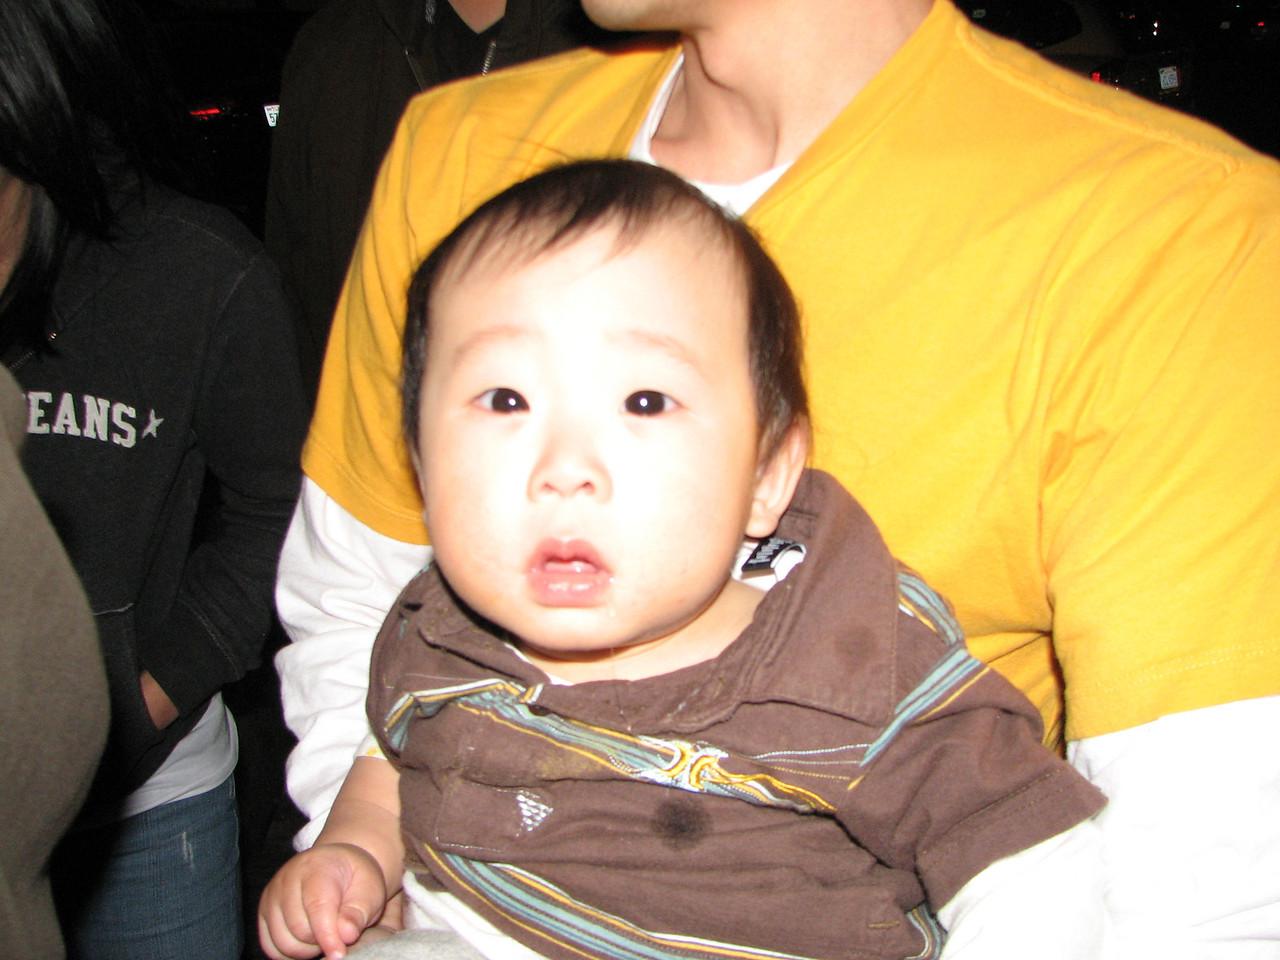 2008 05 24 Sat - Carter Tsai in Jimmy Chen's arms